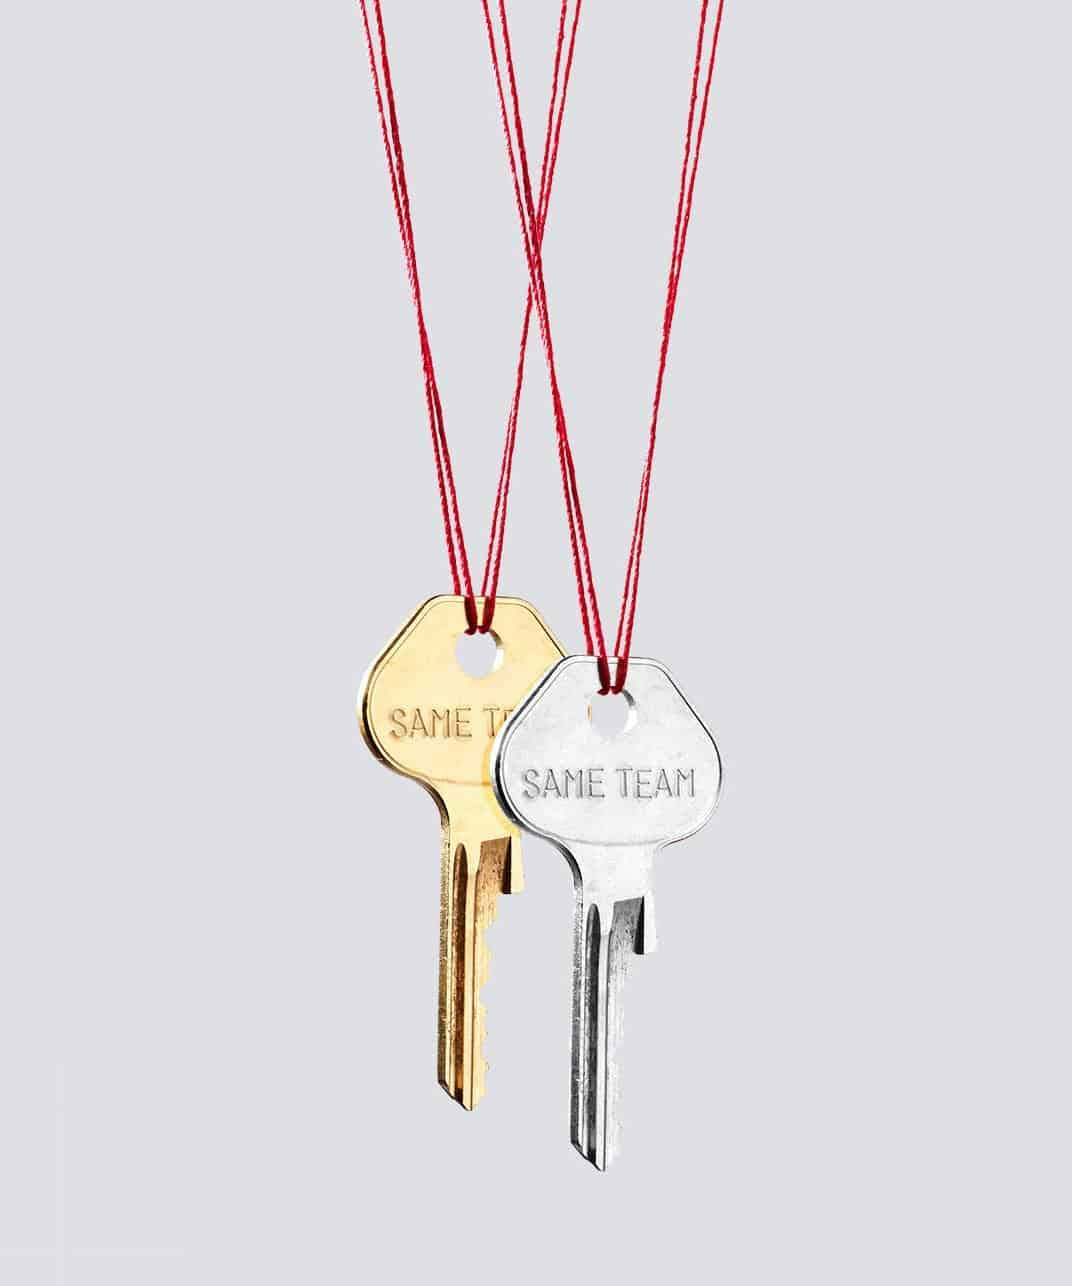 SAME TEAM Red Strand Gold & Silver Key Necklace Set Necklaces The Giving Keys SAME TEAM SILVER AND GOLD